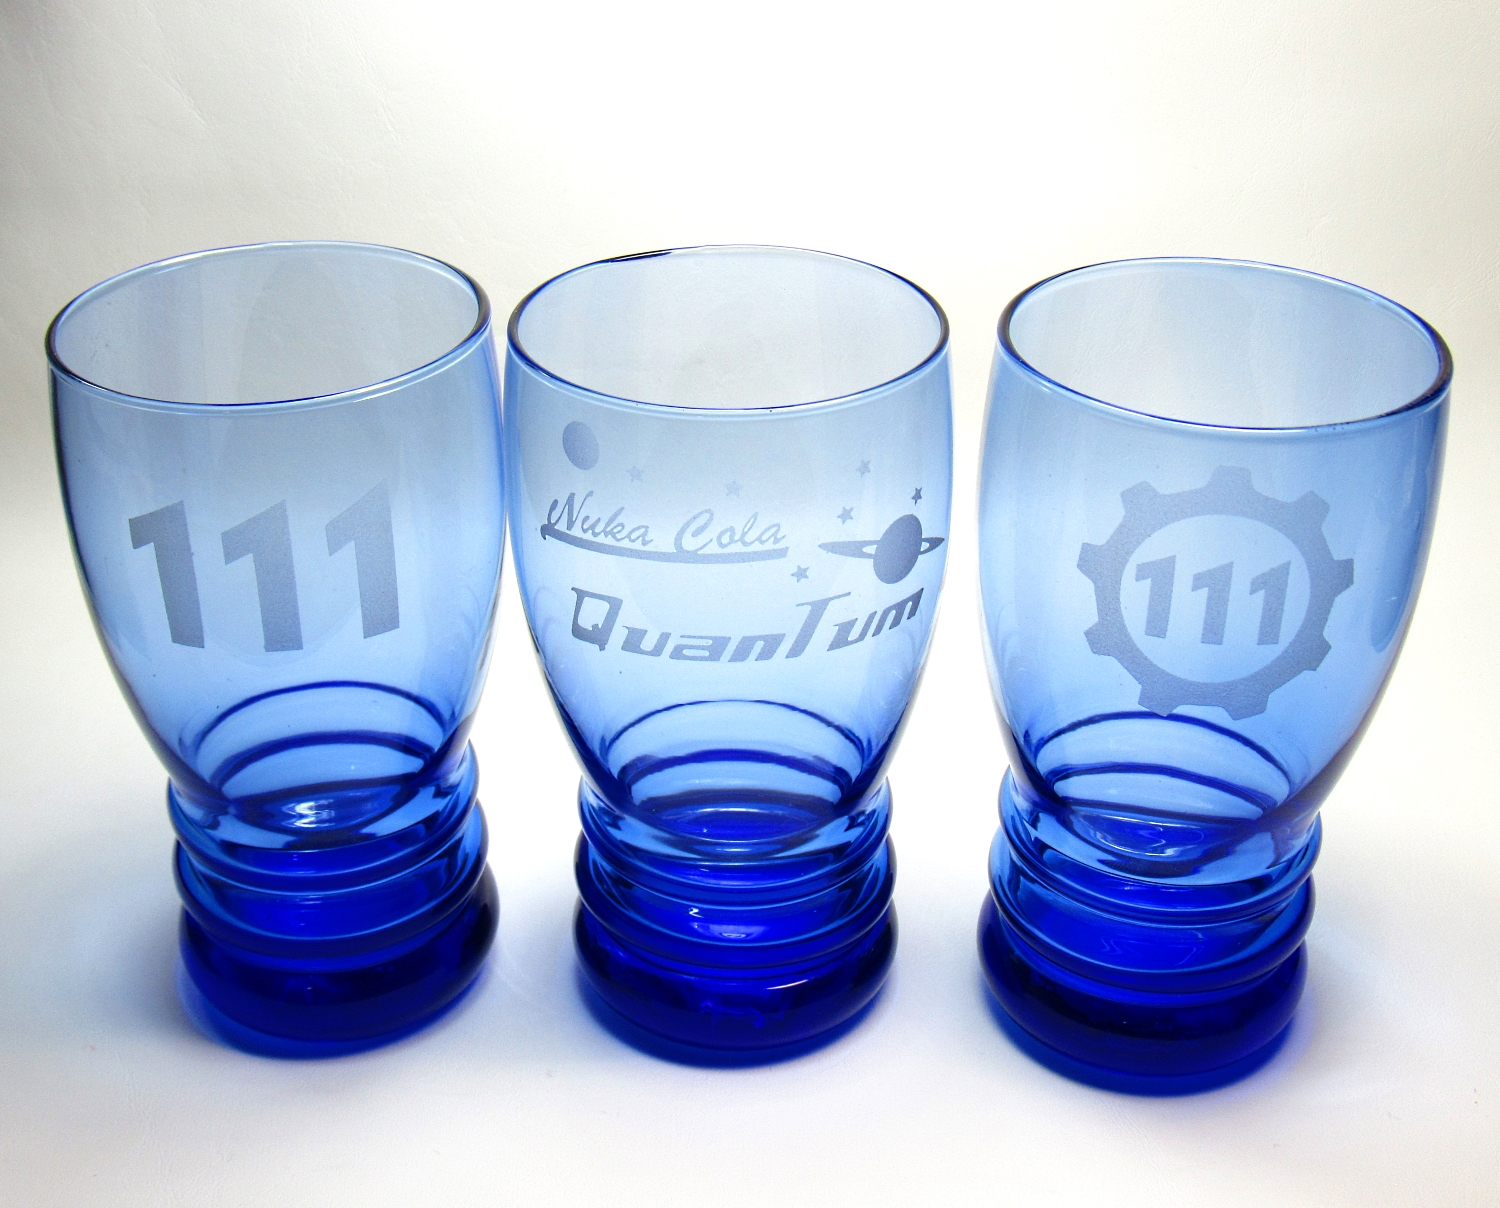 Drinking Glasses Designs Fallout 4 Inspired Drinking Glasses Nerdcrafted